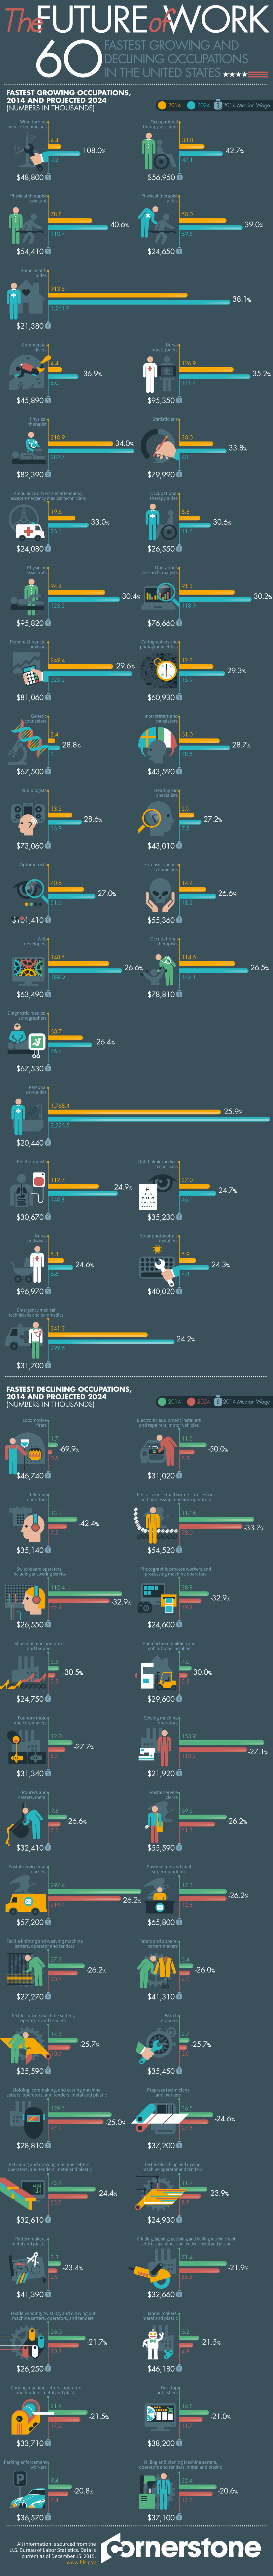 The Future of Work: 60 Fastest Growing and Declining Occupations in the United States